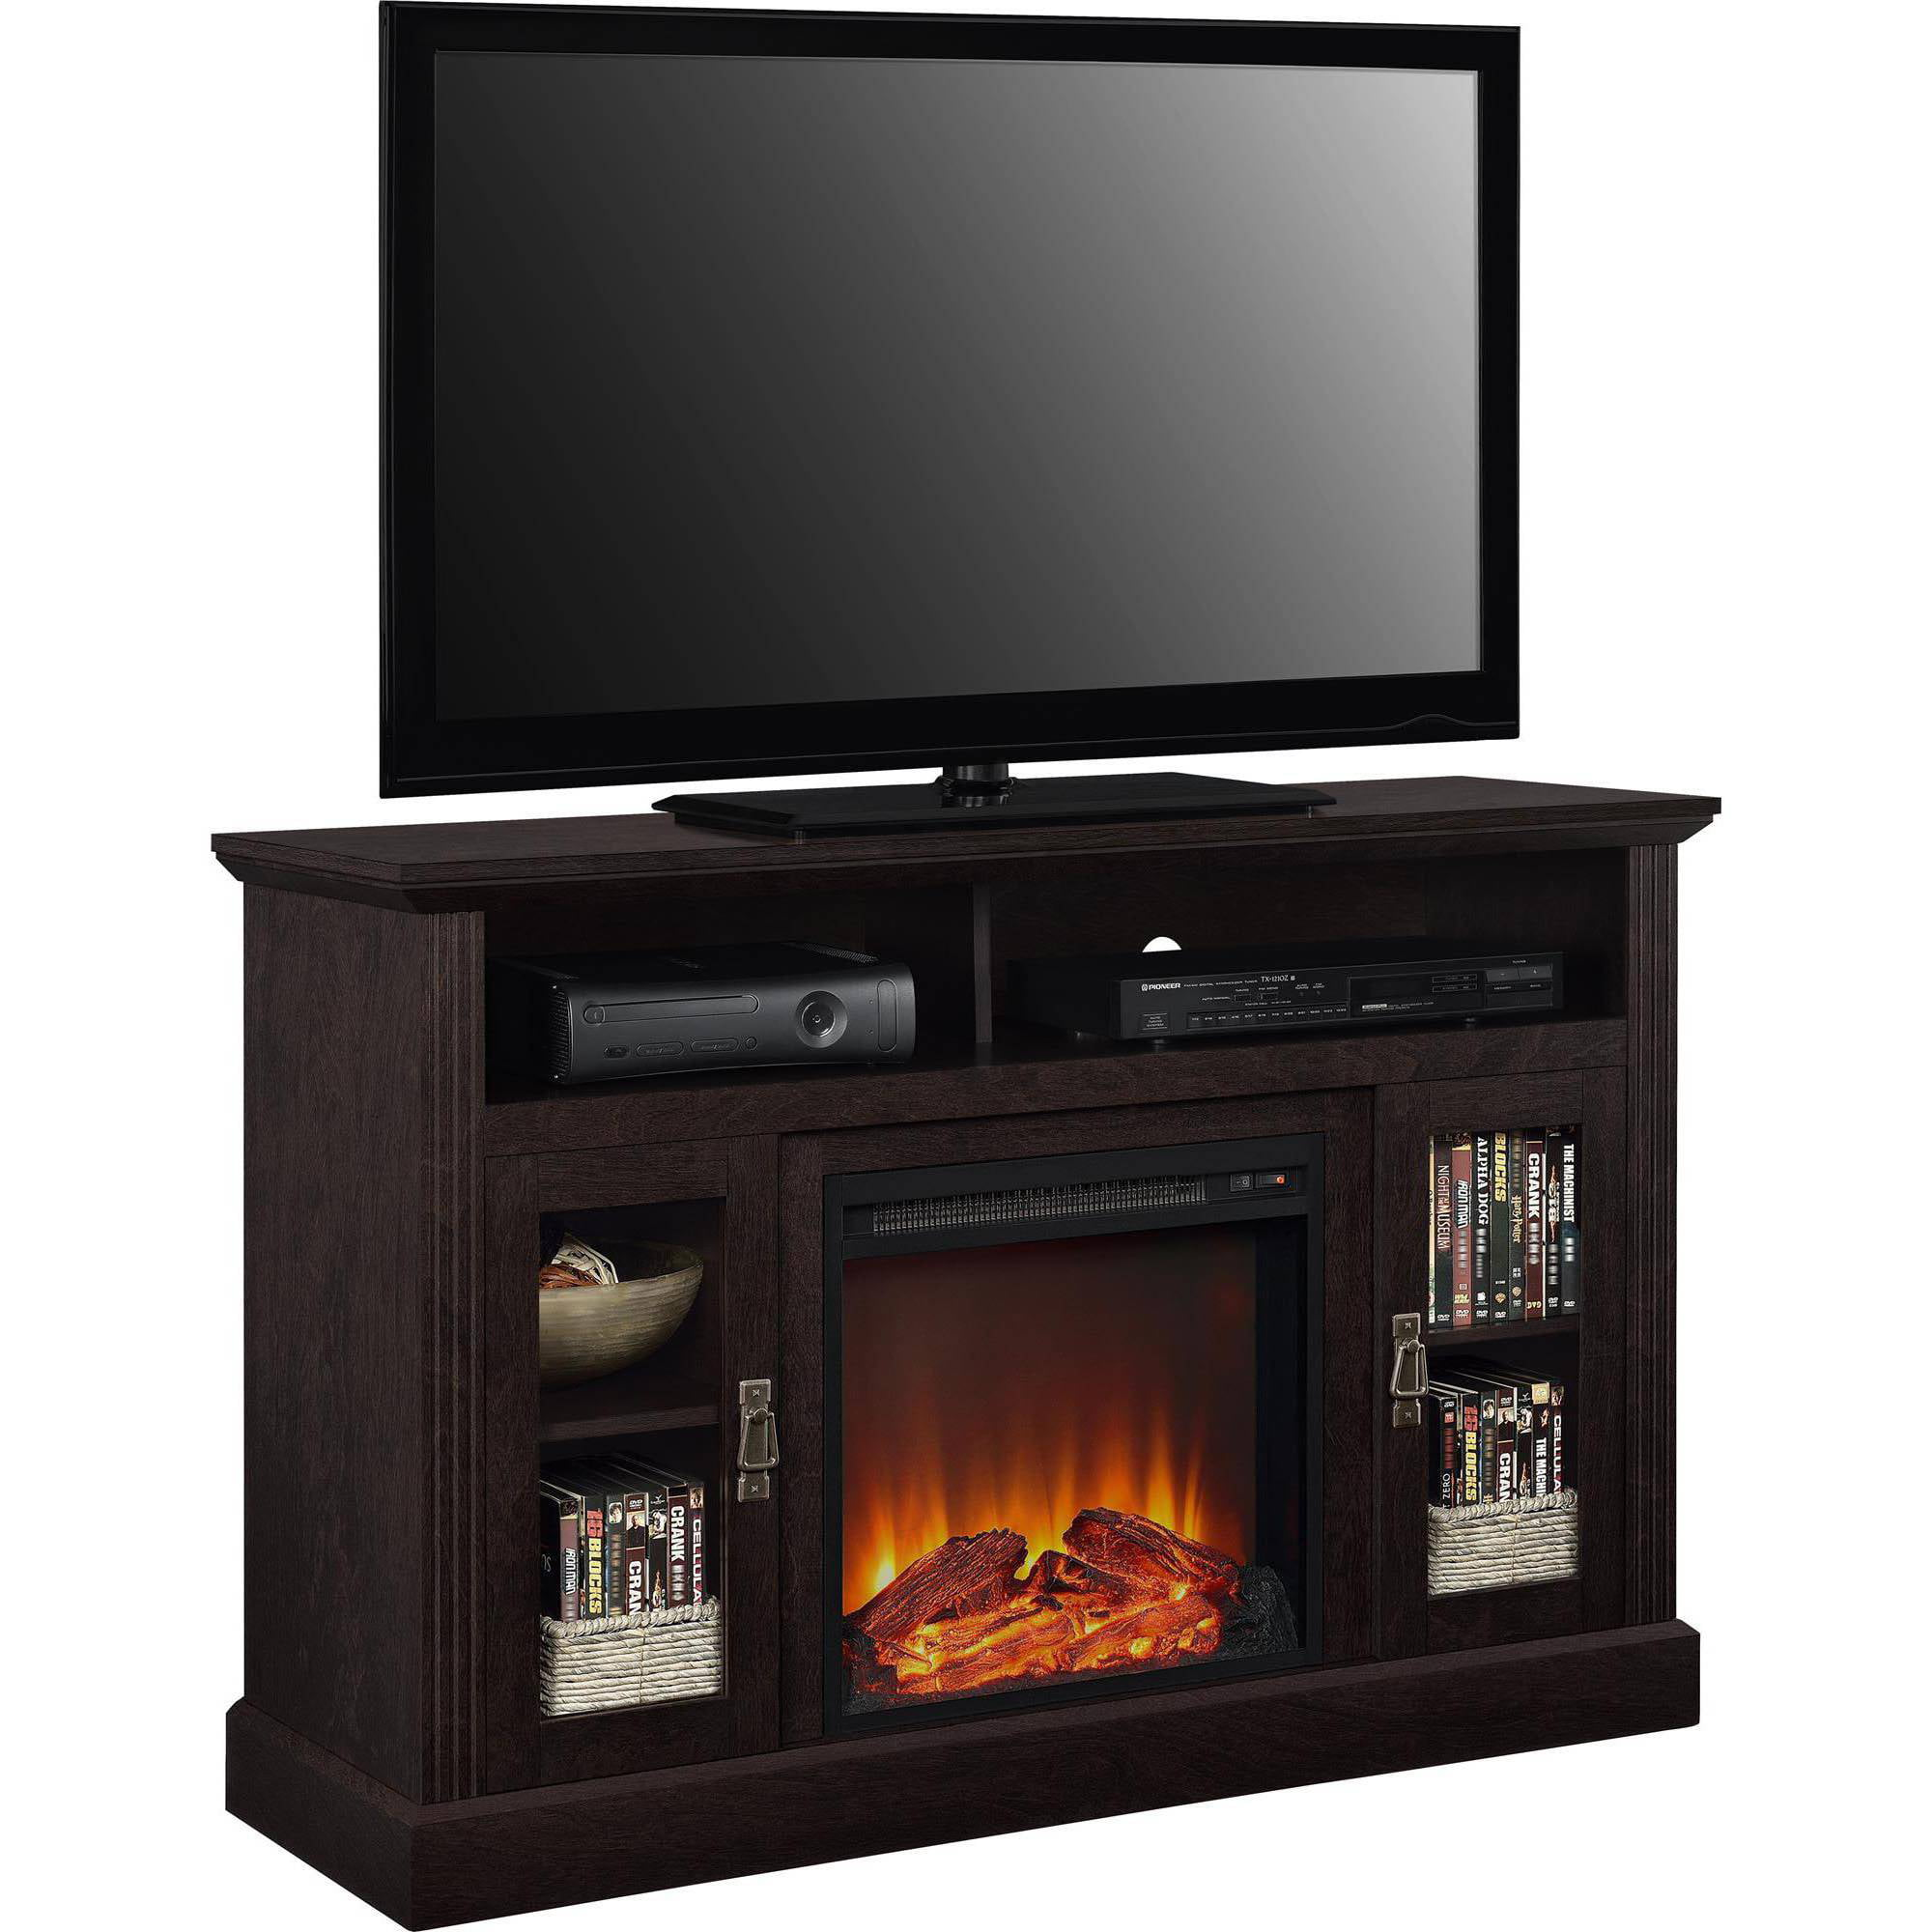 Altra Chicago Electric Fireplace TV Console for TVs up to a 50 ...